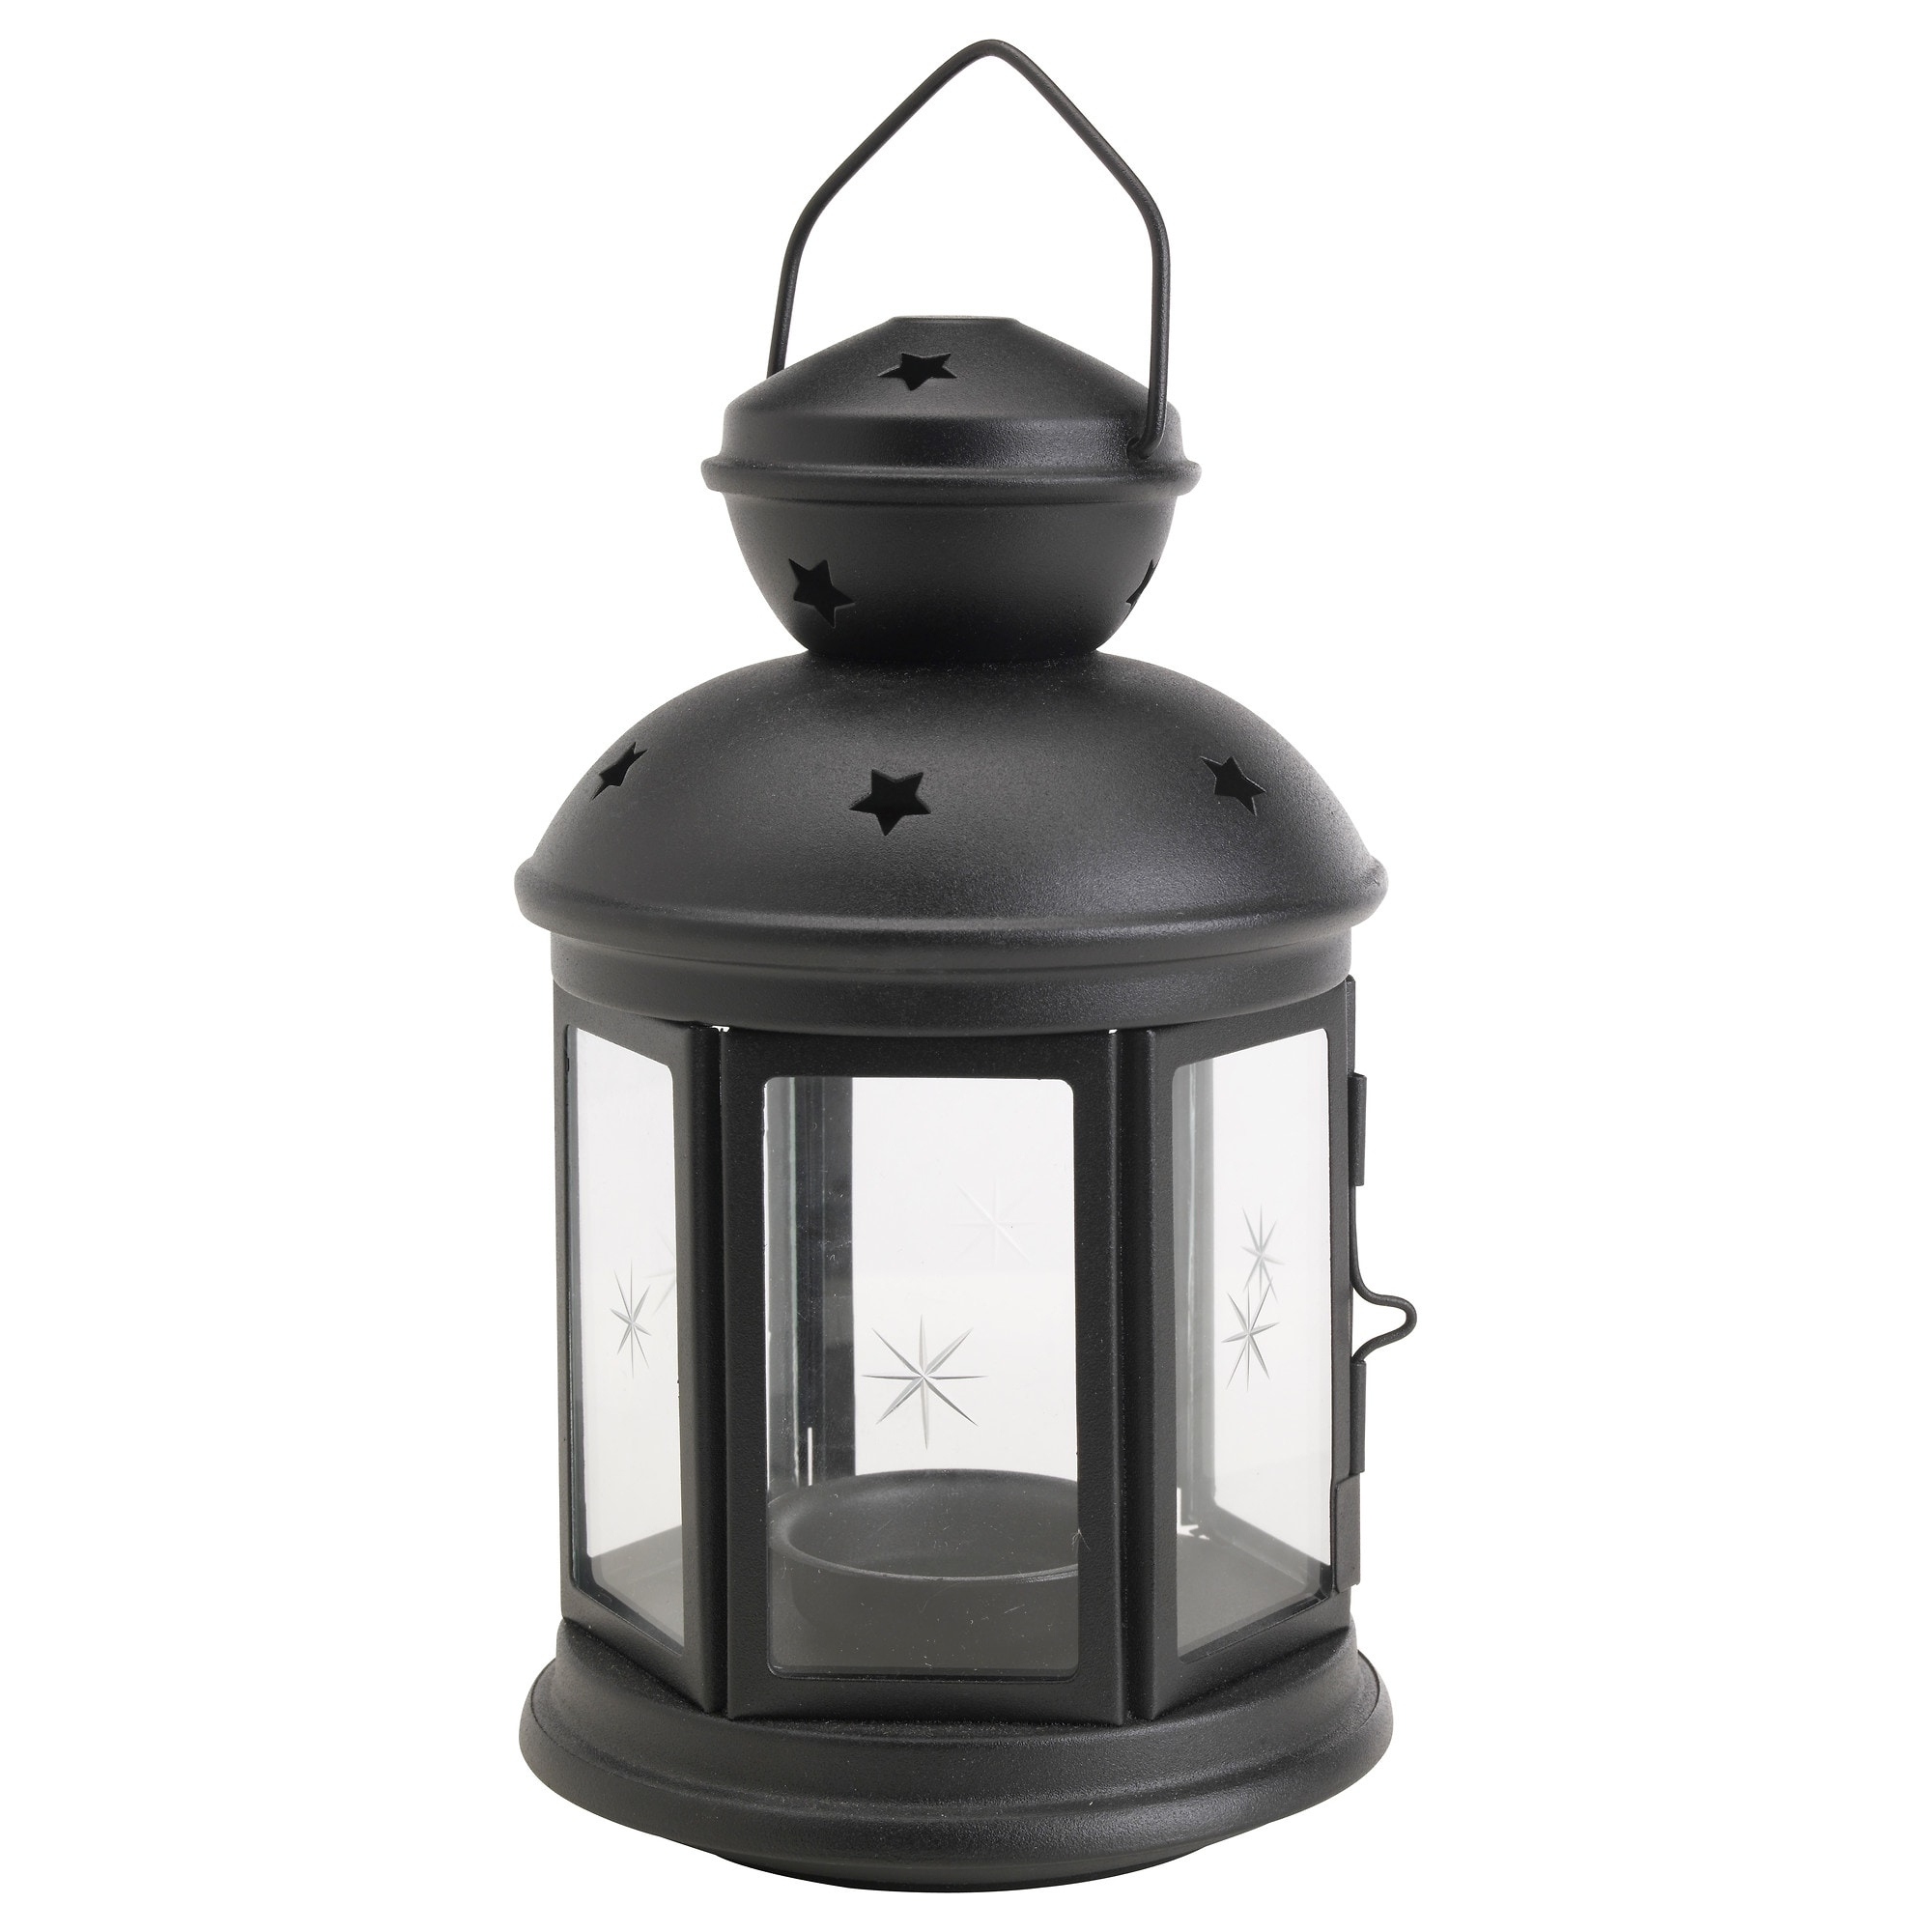 Favorite Rotera Lantern For Tealight – Ikea With Regard To Ikea Outdoor Lanterns (View 15 of 20)